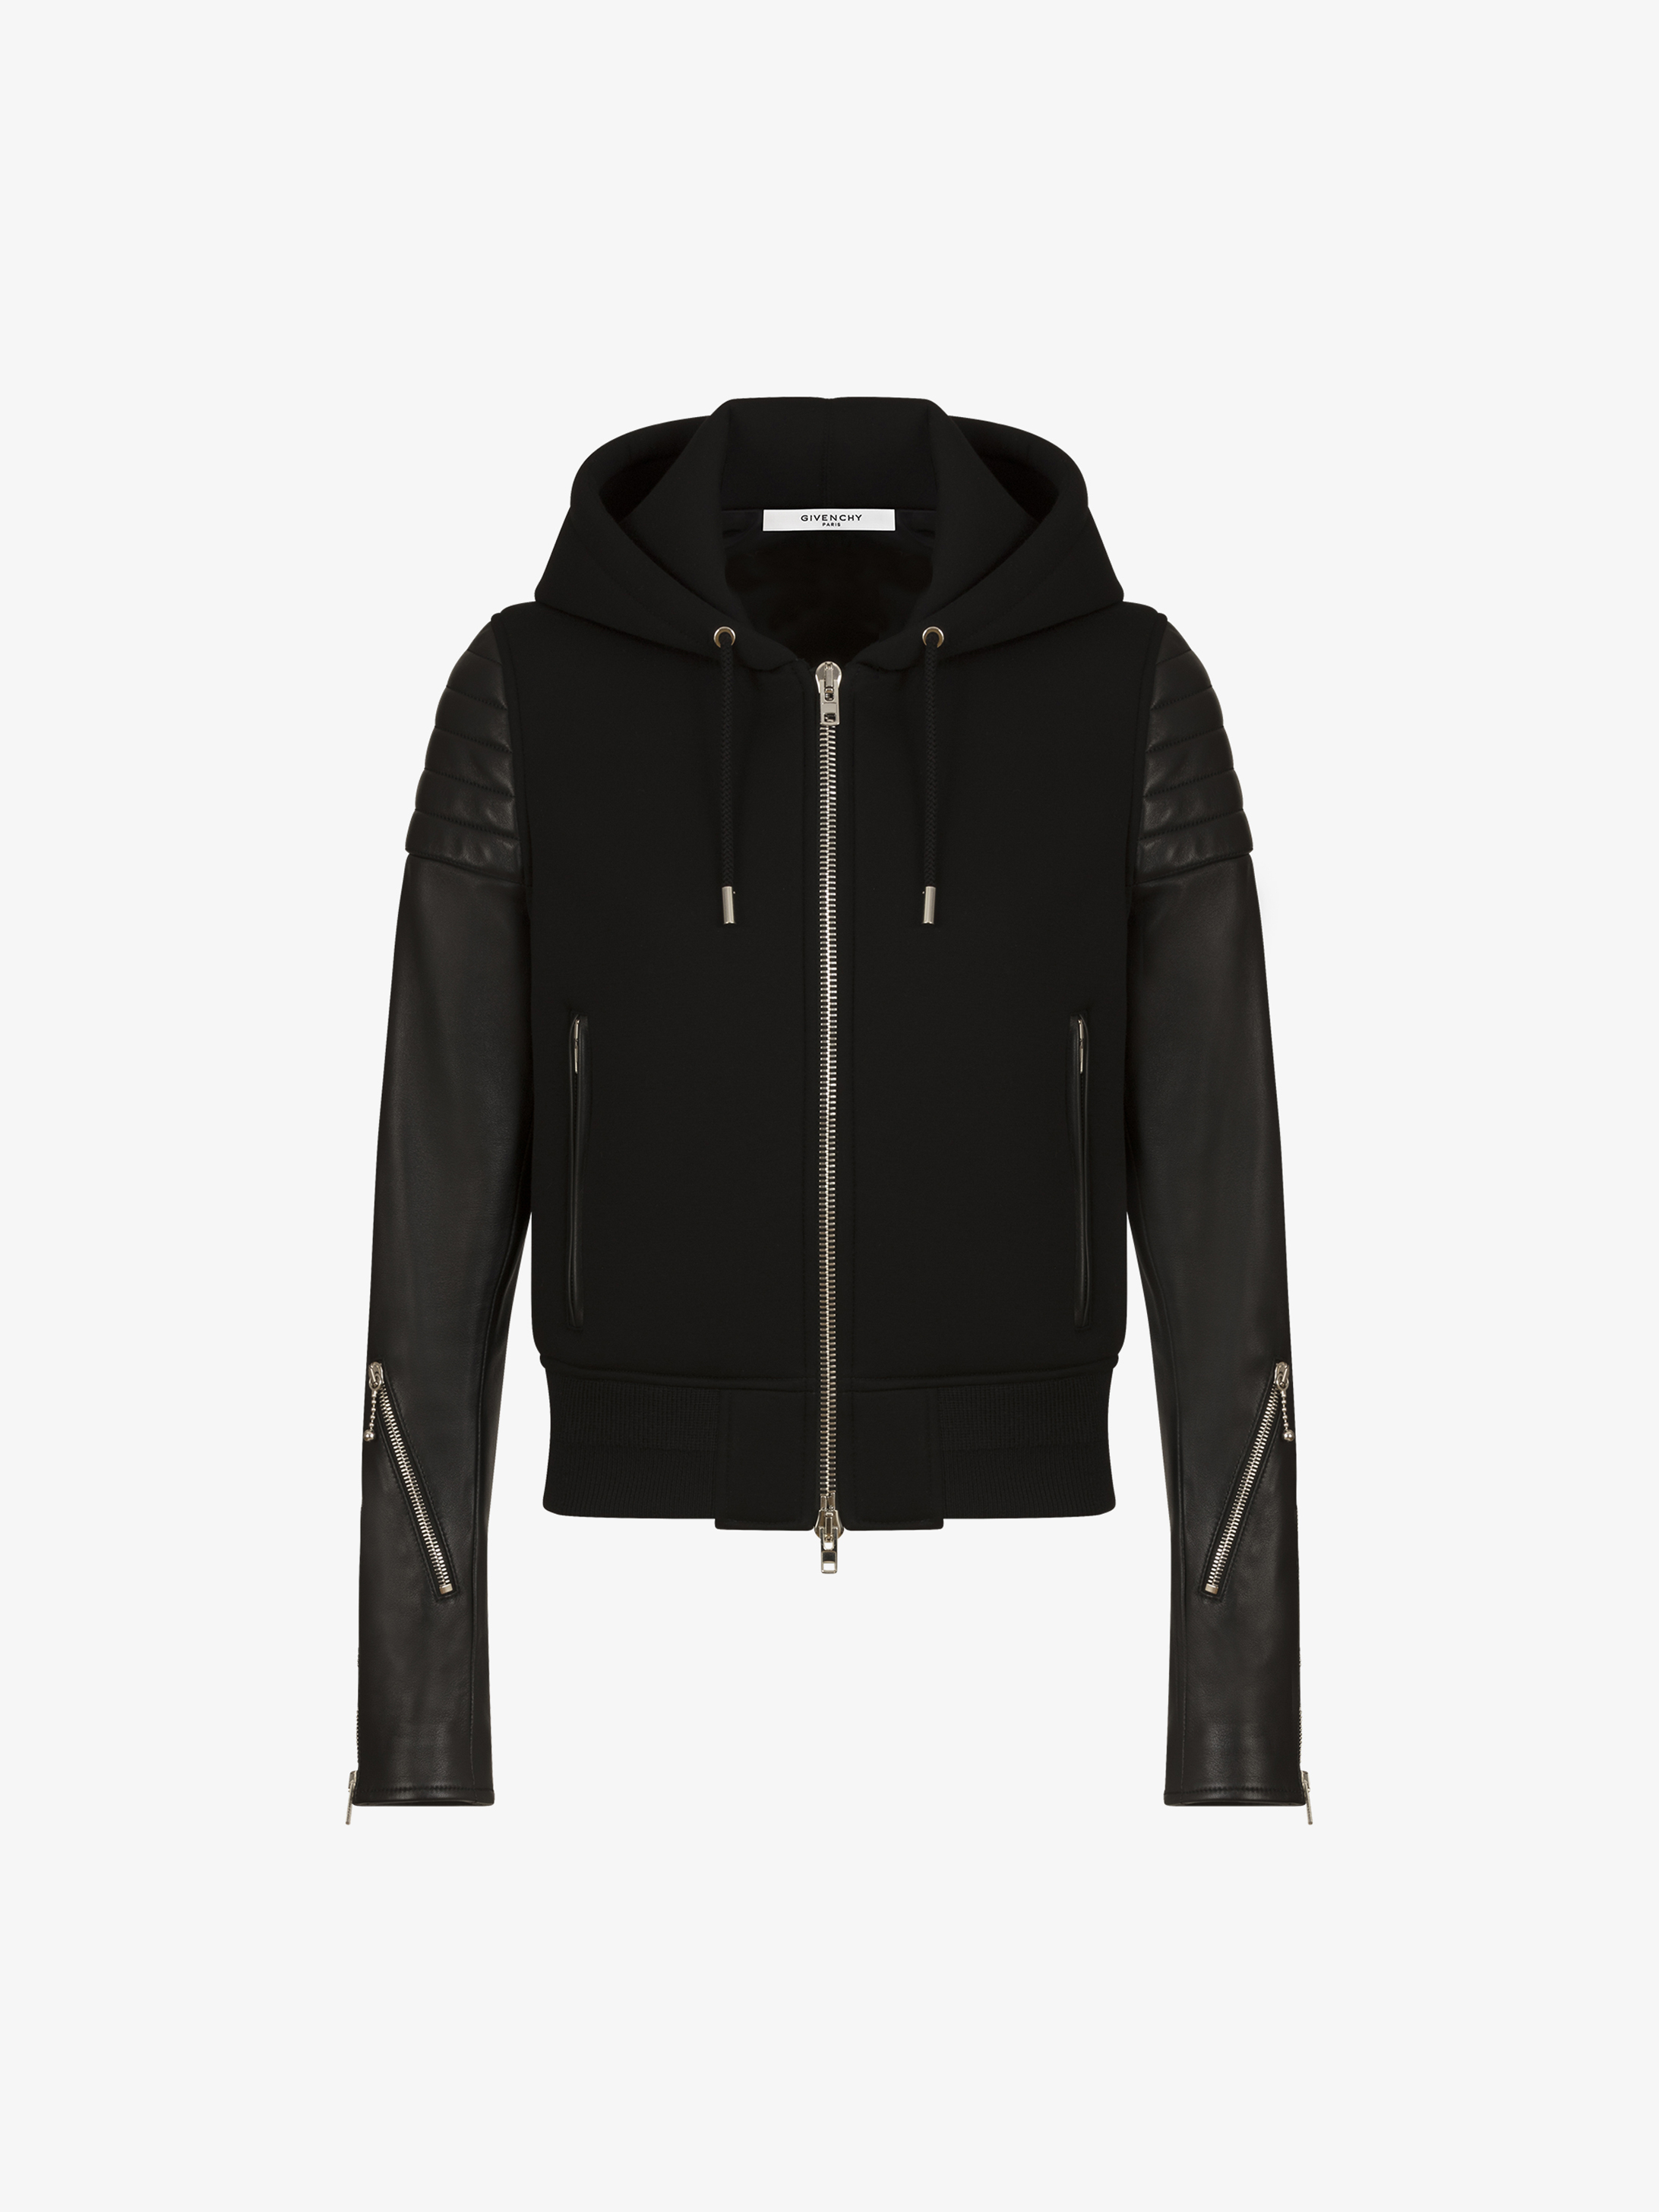 Jacket in leather and neoprene